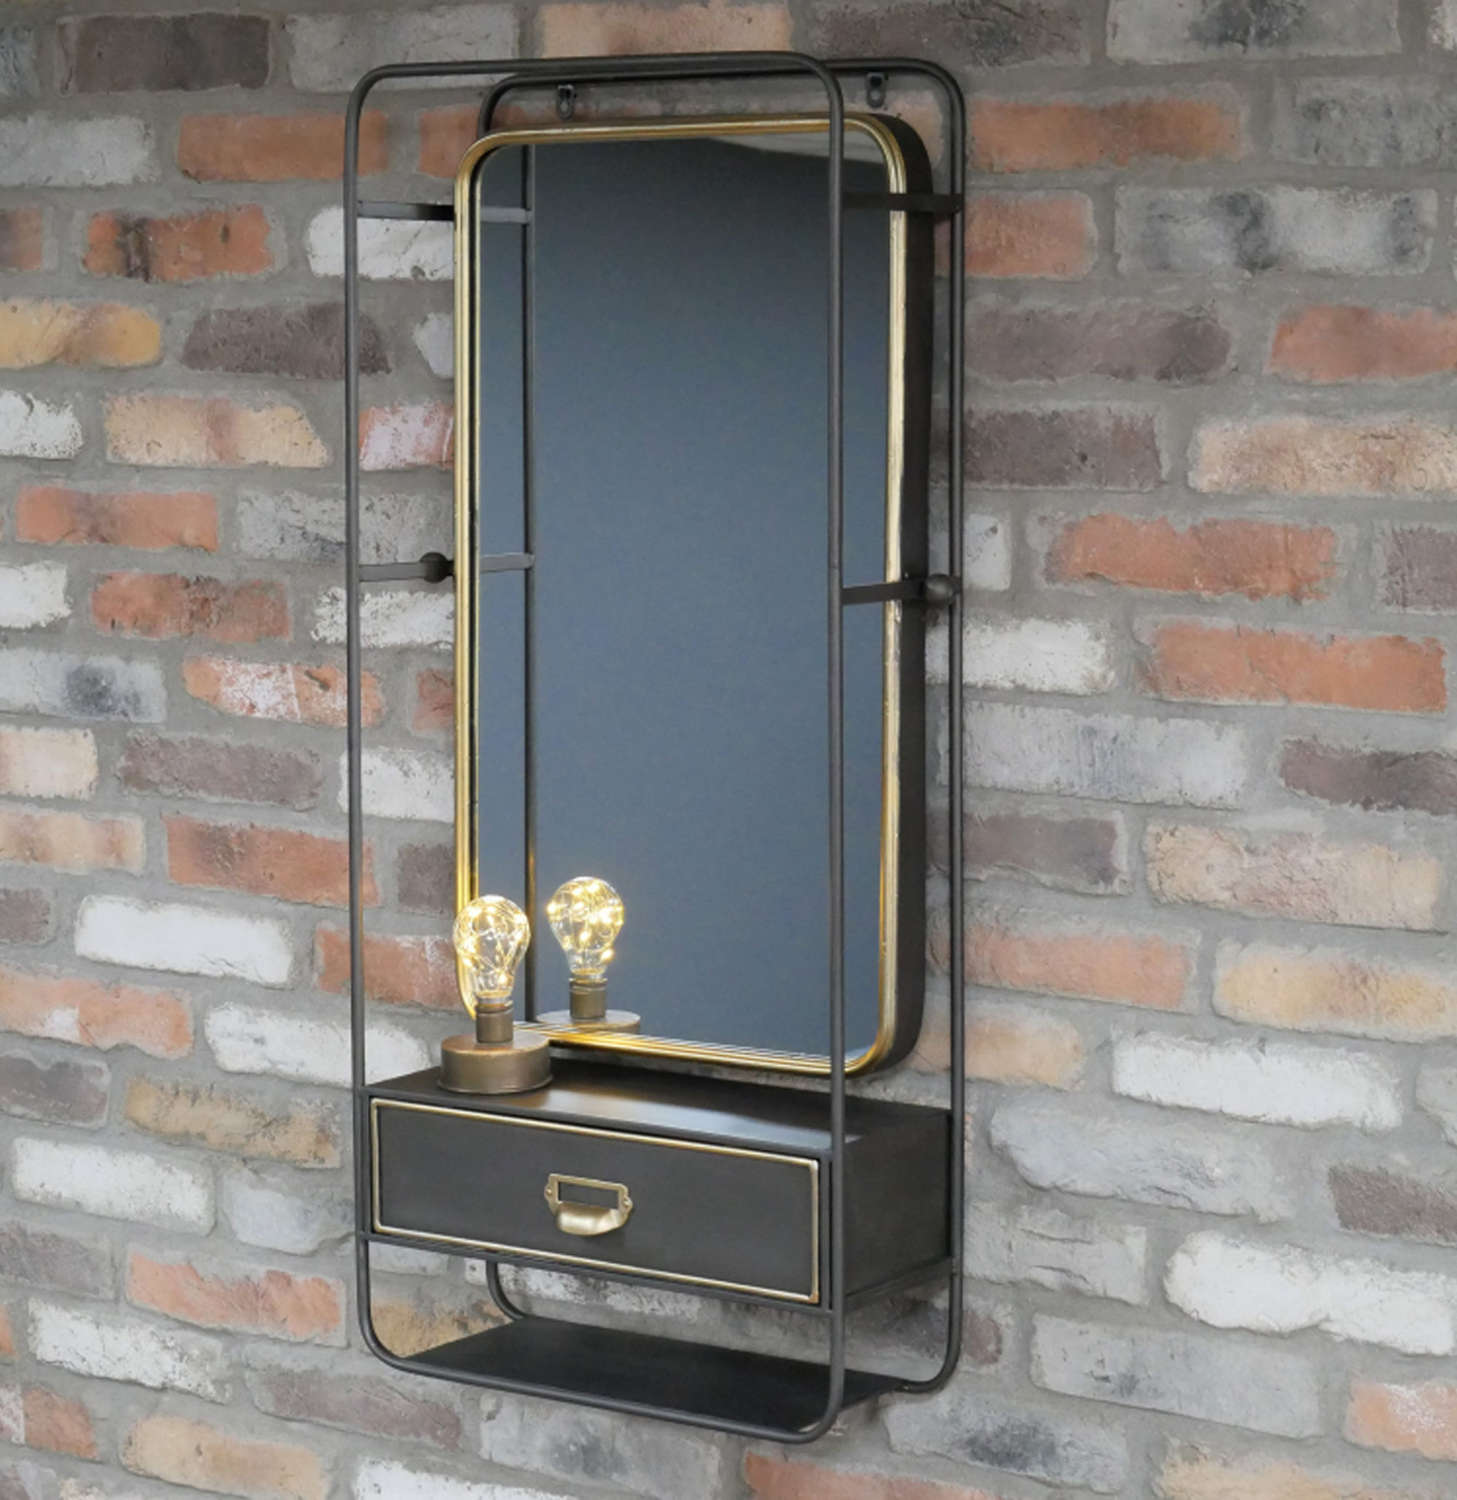 Industrial metal wall shelving unit with mirror